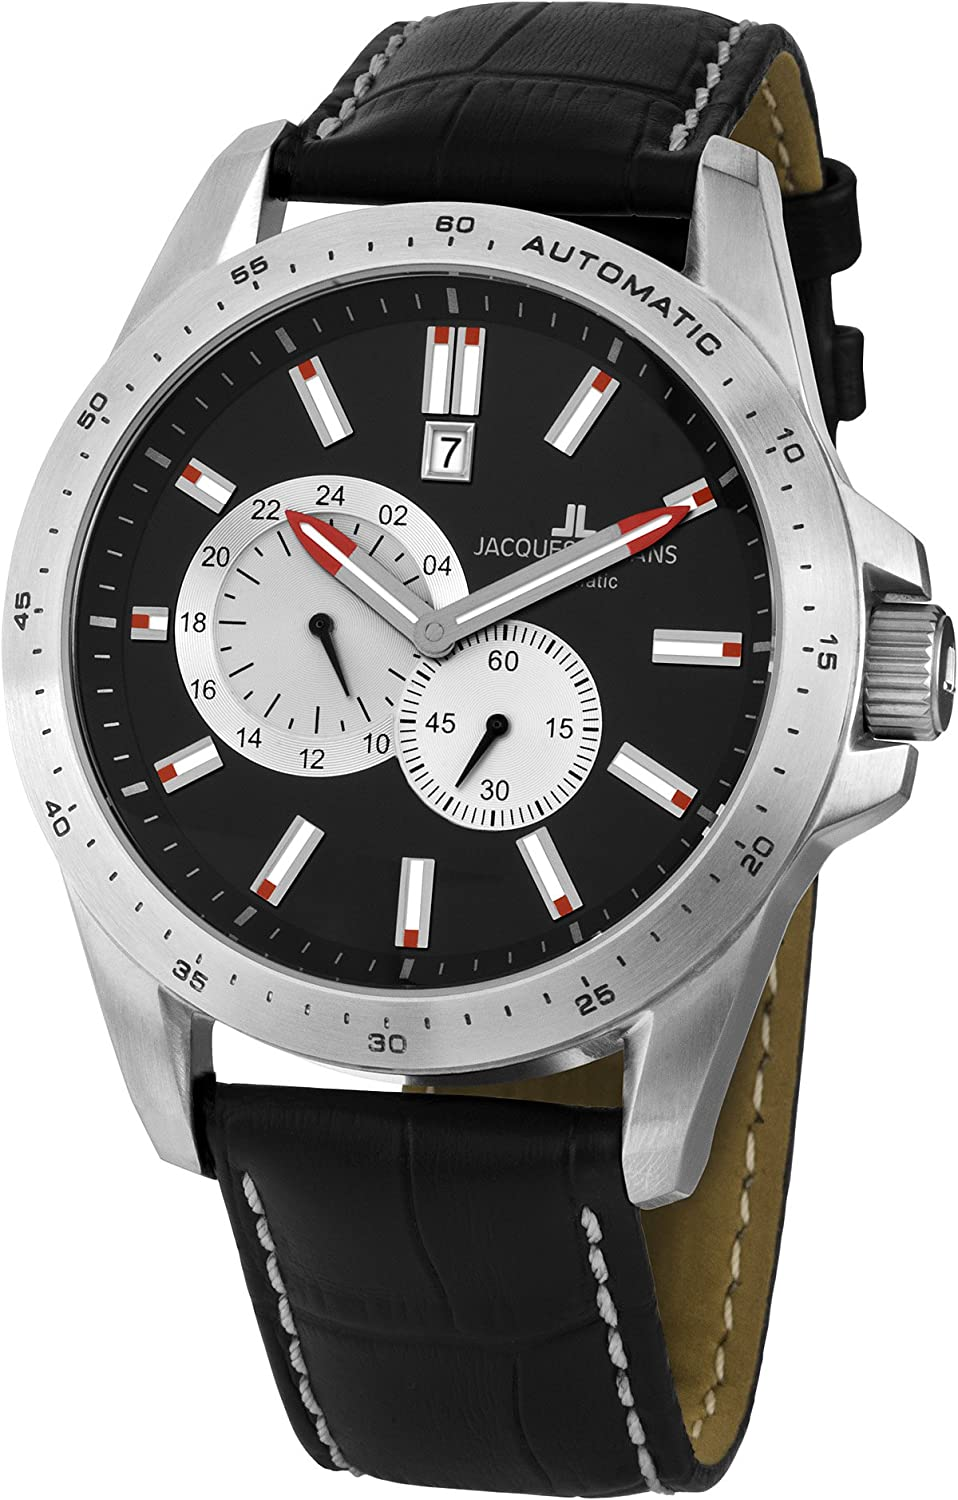 Amazon.com: Jacques Lemans Liverpool Automatic Mens Watch Solid Case: Jacques Lemans: Watches